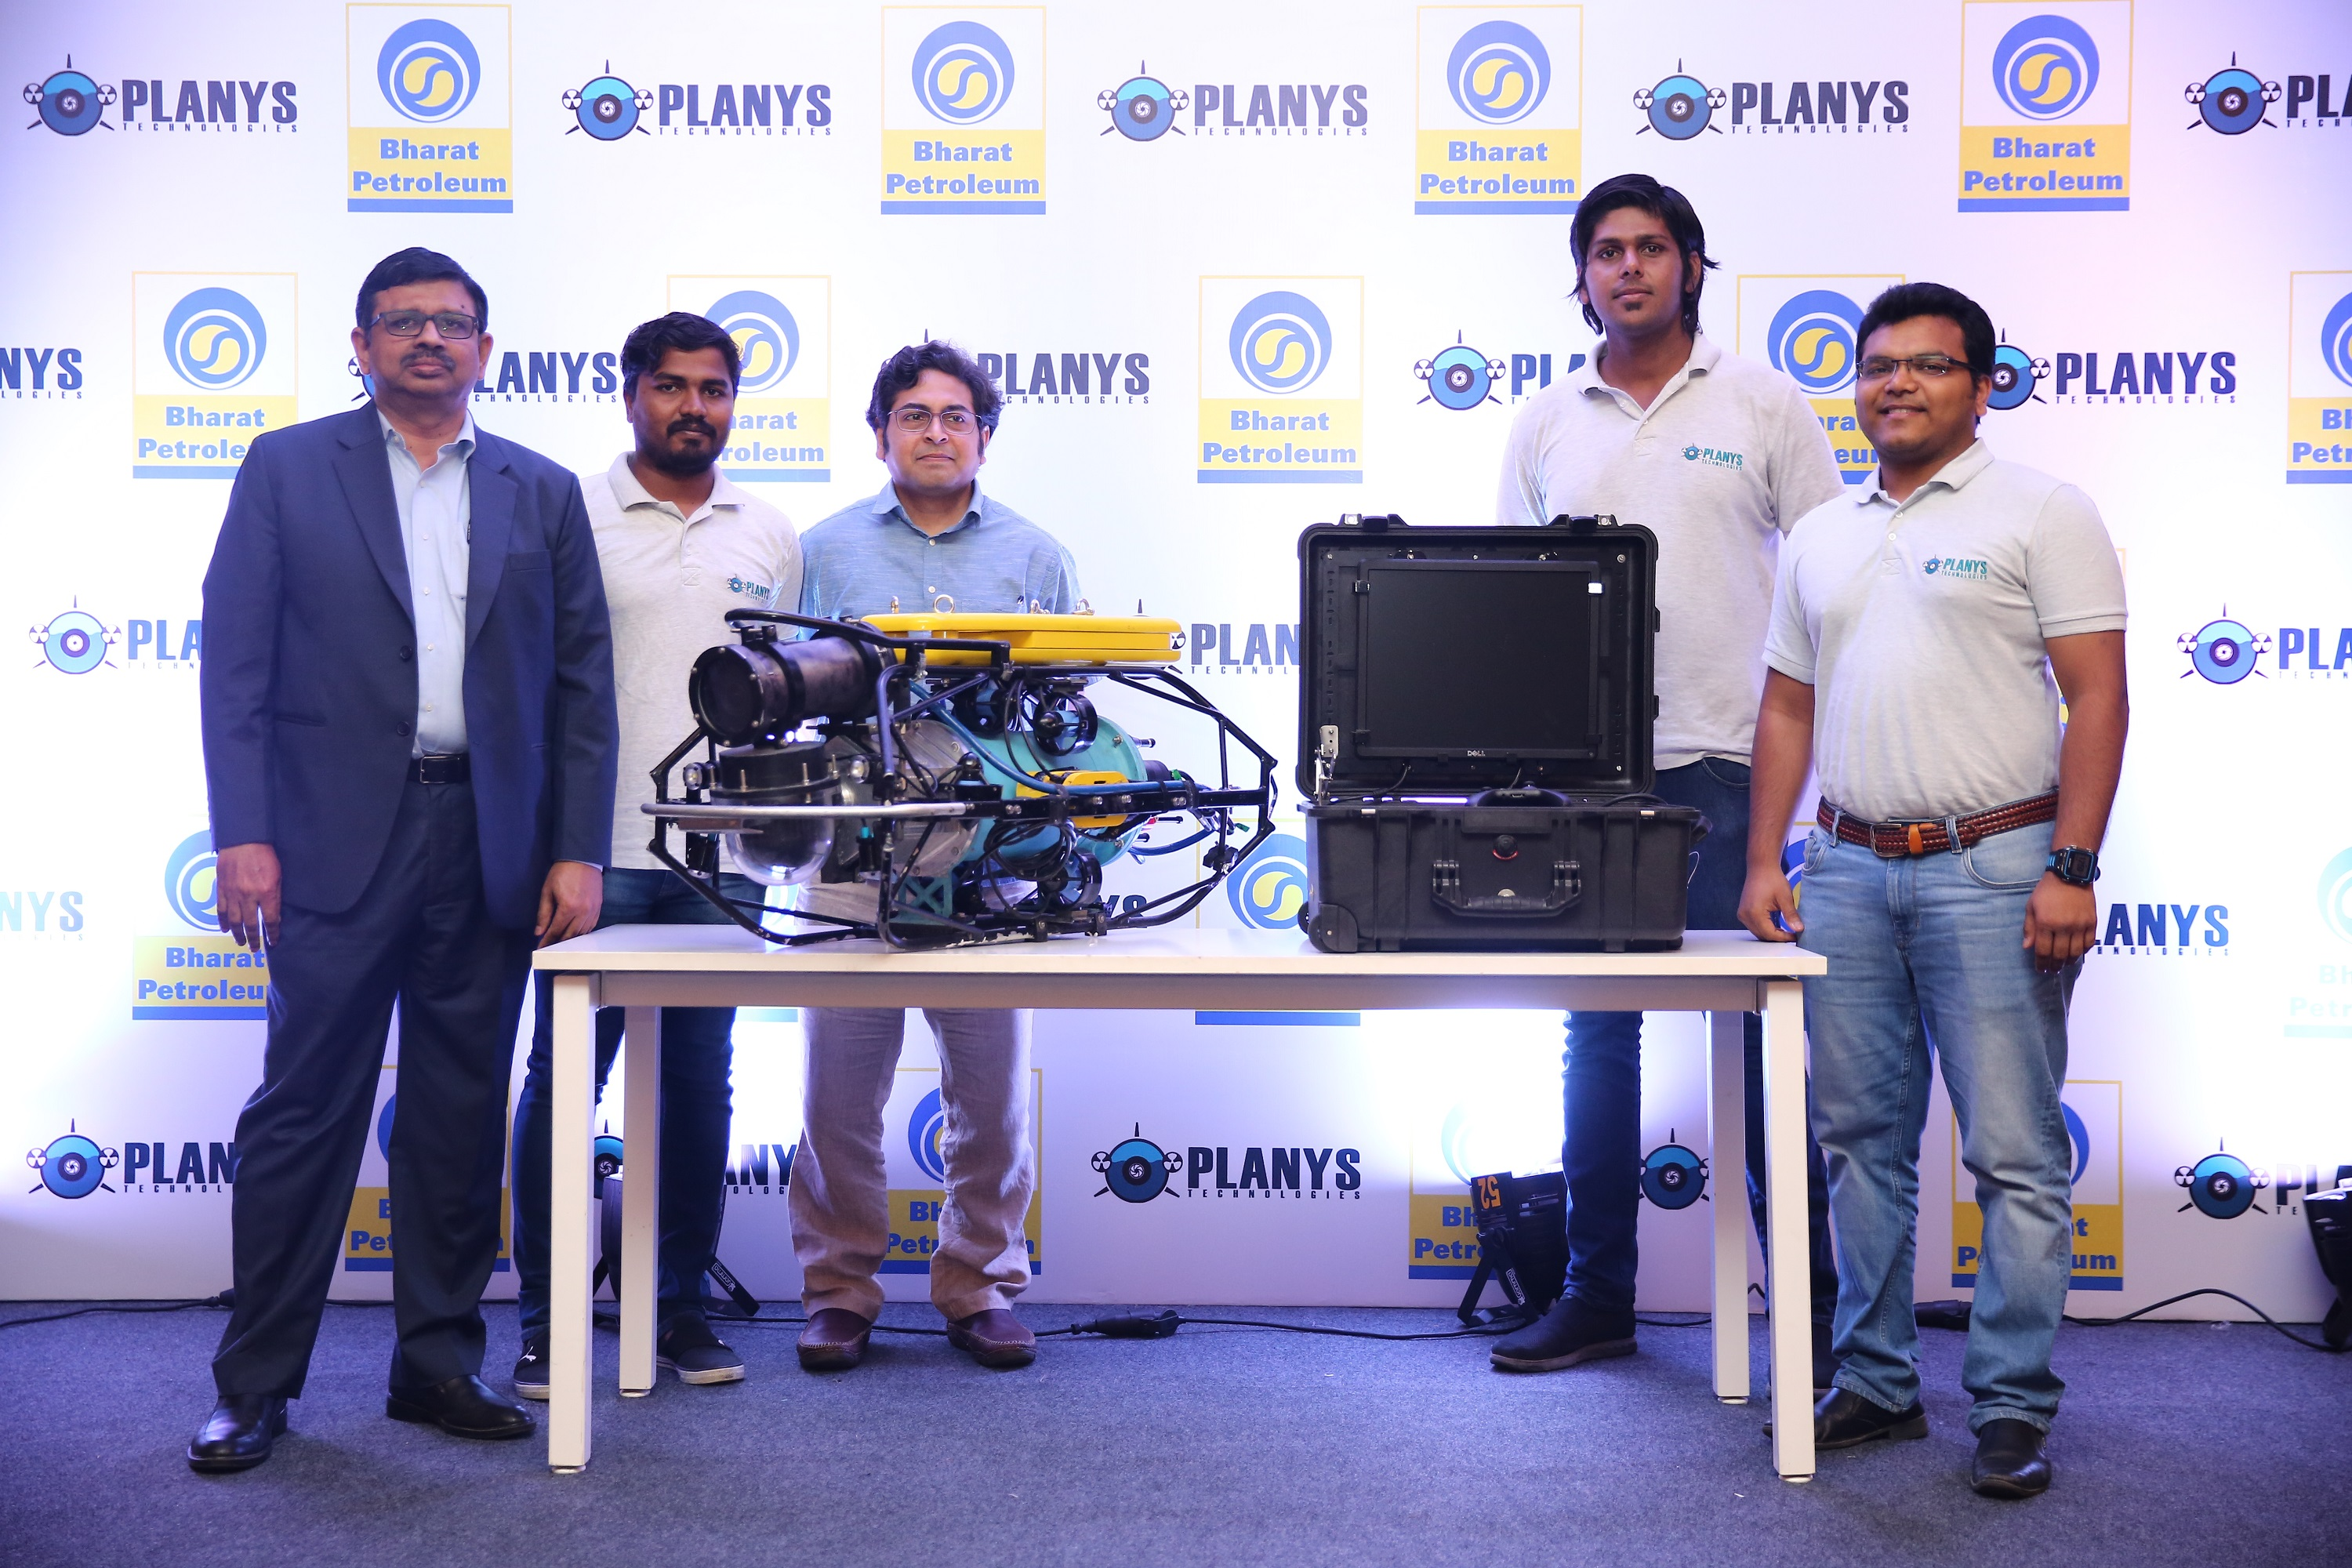 Planys Launches ROV Mikros Indigenously Designed for Downstream Oil & Gas and Process Industries